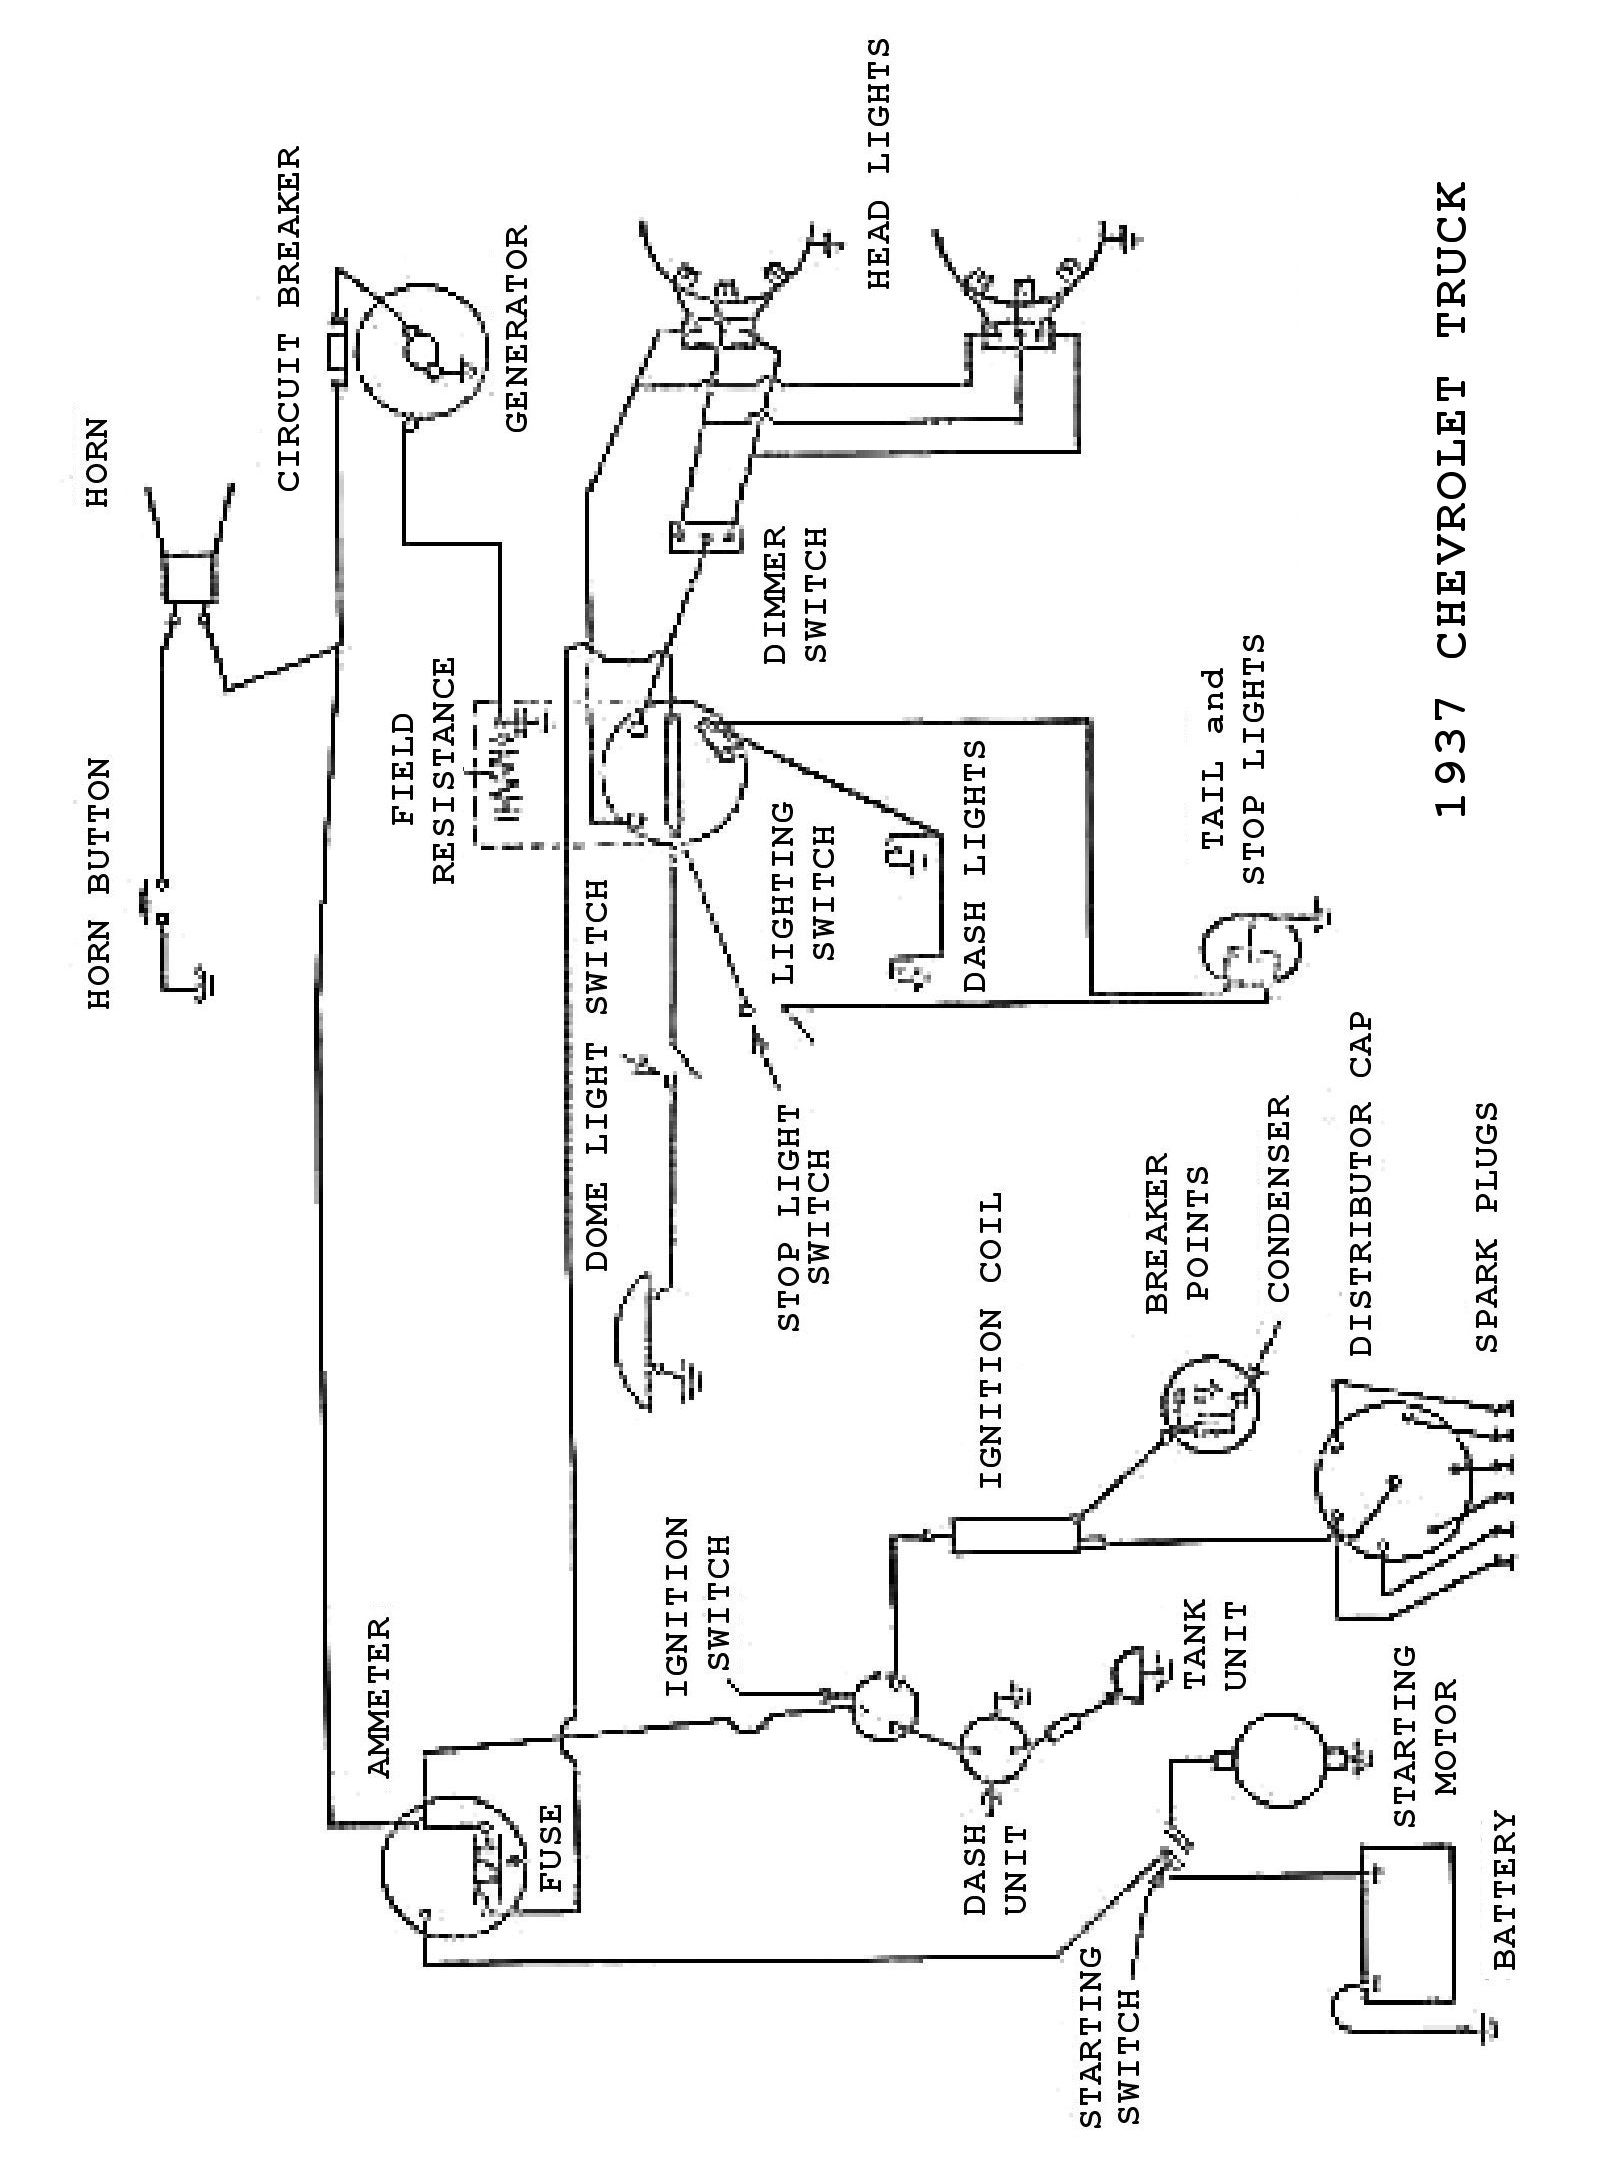 37truck wiring diagram for a 1937 chevy truck wiring diagram simonand 1950 chevy truck wiring diagram at honlapkeszites.co